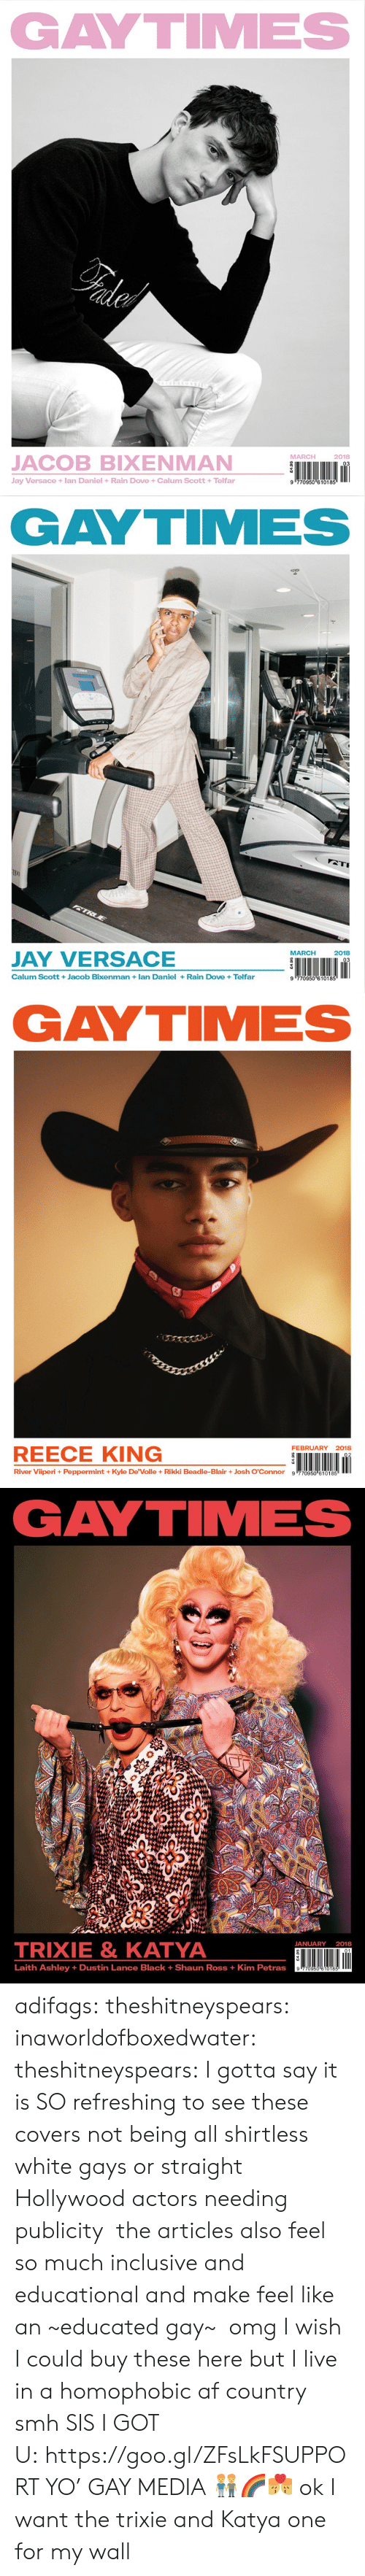 Reece: GAYTIMES  MARCH  2018  JACOB BIXENMAN  Jay Versace +lan Daniel +Rain Dove +Calum Scott +Telfar  9 770950 610185   GAYTIMES  MARCH2018  JAY VERSACE  Calum Scott +Jacob Bixenman lan Daniel+Rain Dove +Telfar  9 770950 610185   GAYTIMES  FEBRUARY 2018  REECE KING  River Viiperi+ Peppermint +Kyle De'Volle+ Rikki Beadle-BlairJosh O'Connor g 770950 610185   GAYTIMES  TRIXIE& KATYA  JANUARY 2018  01  Laith Ashley +Dustin Lance Black + Shaun Ross + Kim Petras adifags:  theshitneyspears:  inaworldofboxedwater:  theshitneyspears:   I gotta say it is SO refreshing to see these covers not being all shirtless white gays or straight Hollywood actors needing publicity the articles also feel so much inclusive and educational and make feel like an~educated gay~   omg I wish I could buy these here but I live in a homophobic af country smh  SIS I GOT U:https://goo.gl/ZFsLkFSUPPORT YO' GAY MEDIA👬🌈👨❤️💋👨  ok I want the trixie and Katya one for my wall